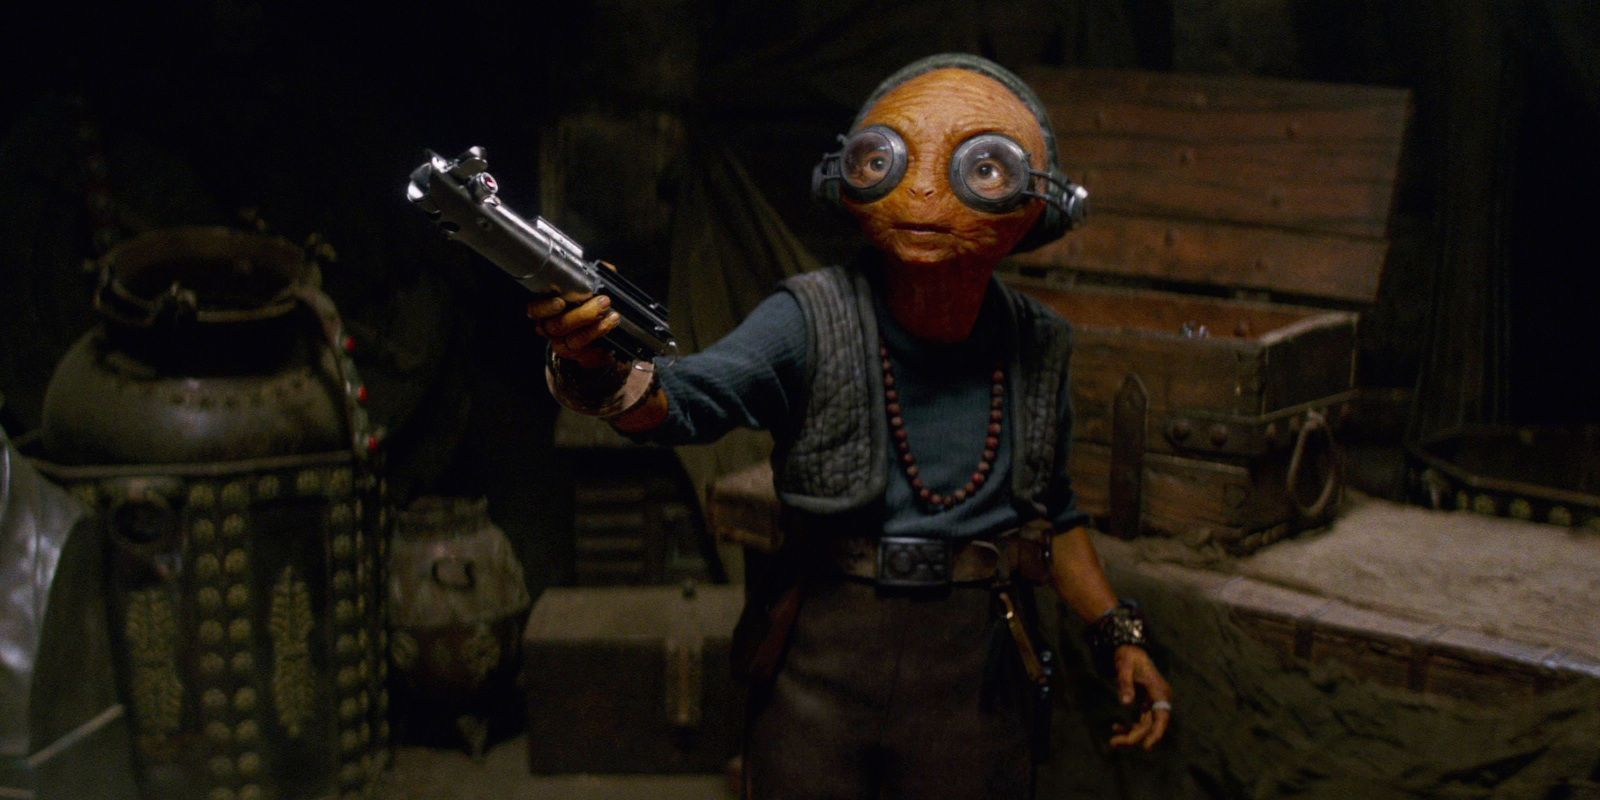 Star Wars Concept Art Gives Maz Kanata an Eye-Popping Redesign